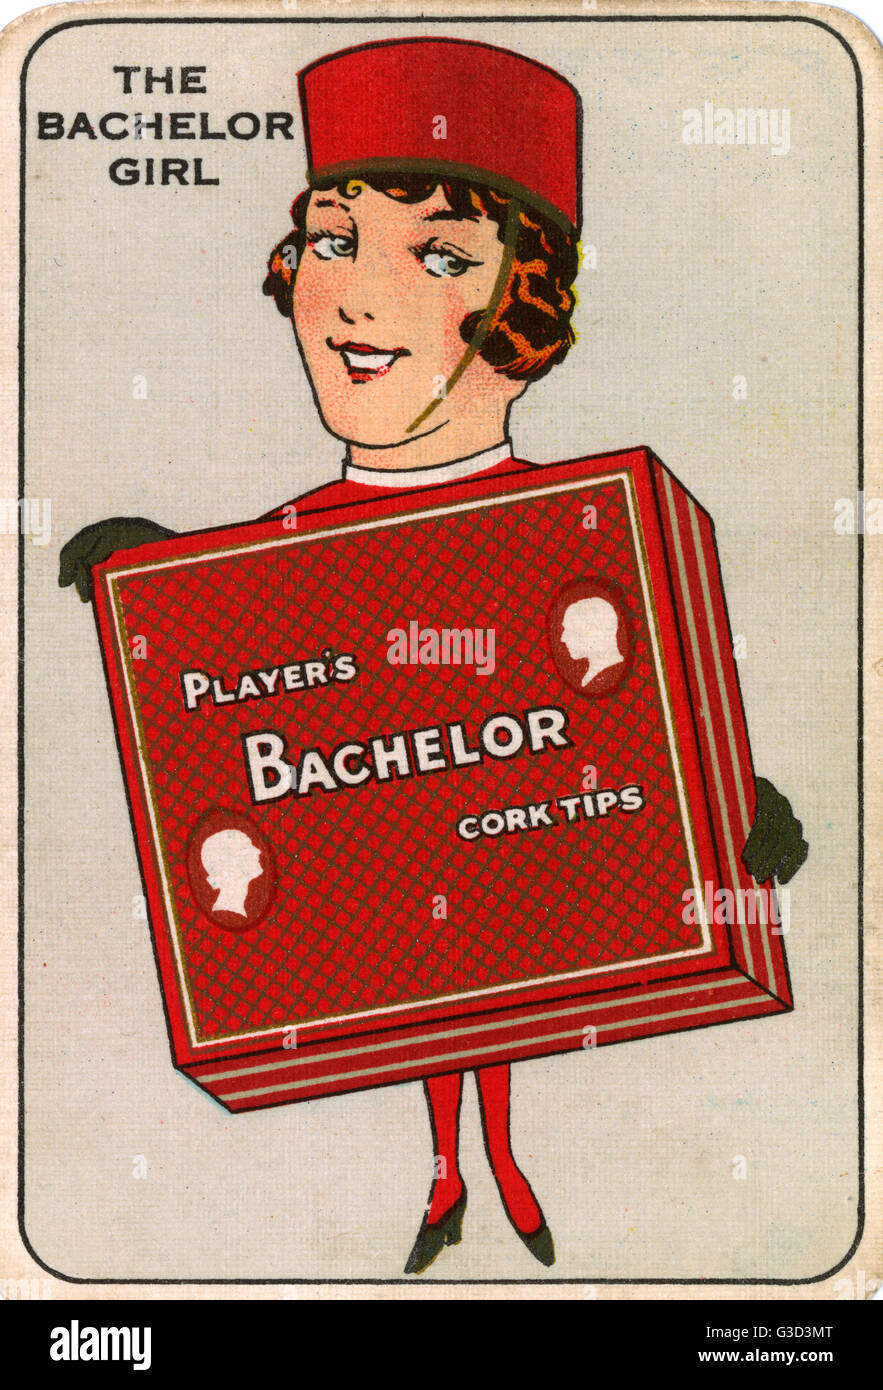 Player's Navy Cut Snap Game - The Bachelor Girl - holding a large pack of Bachelor Cork Tips.     Date: 1930 - Stock Image